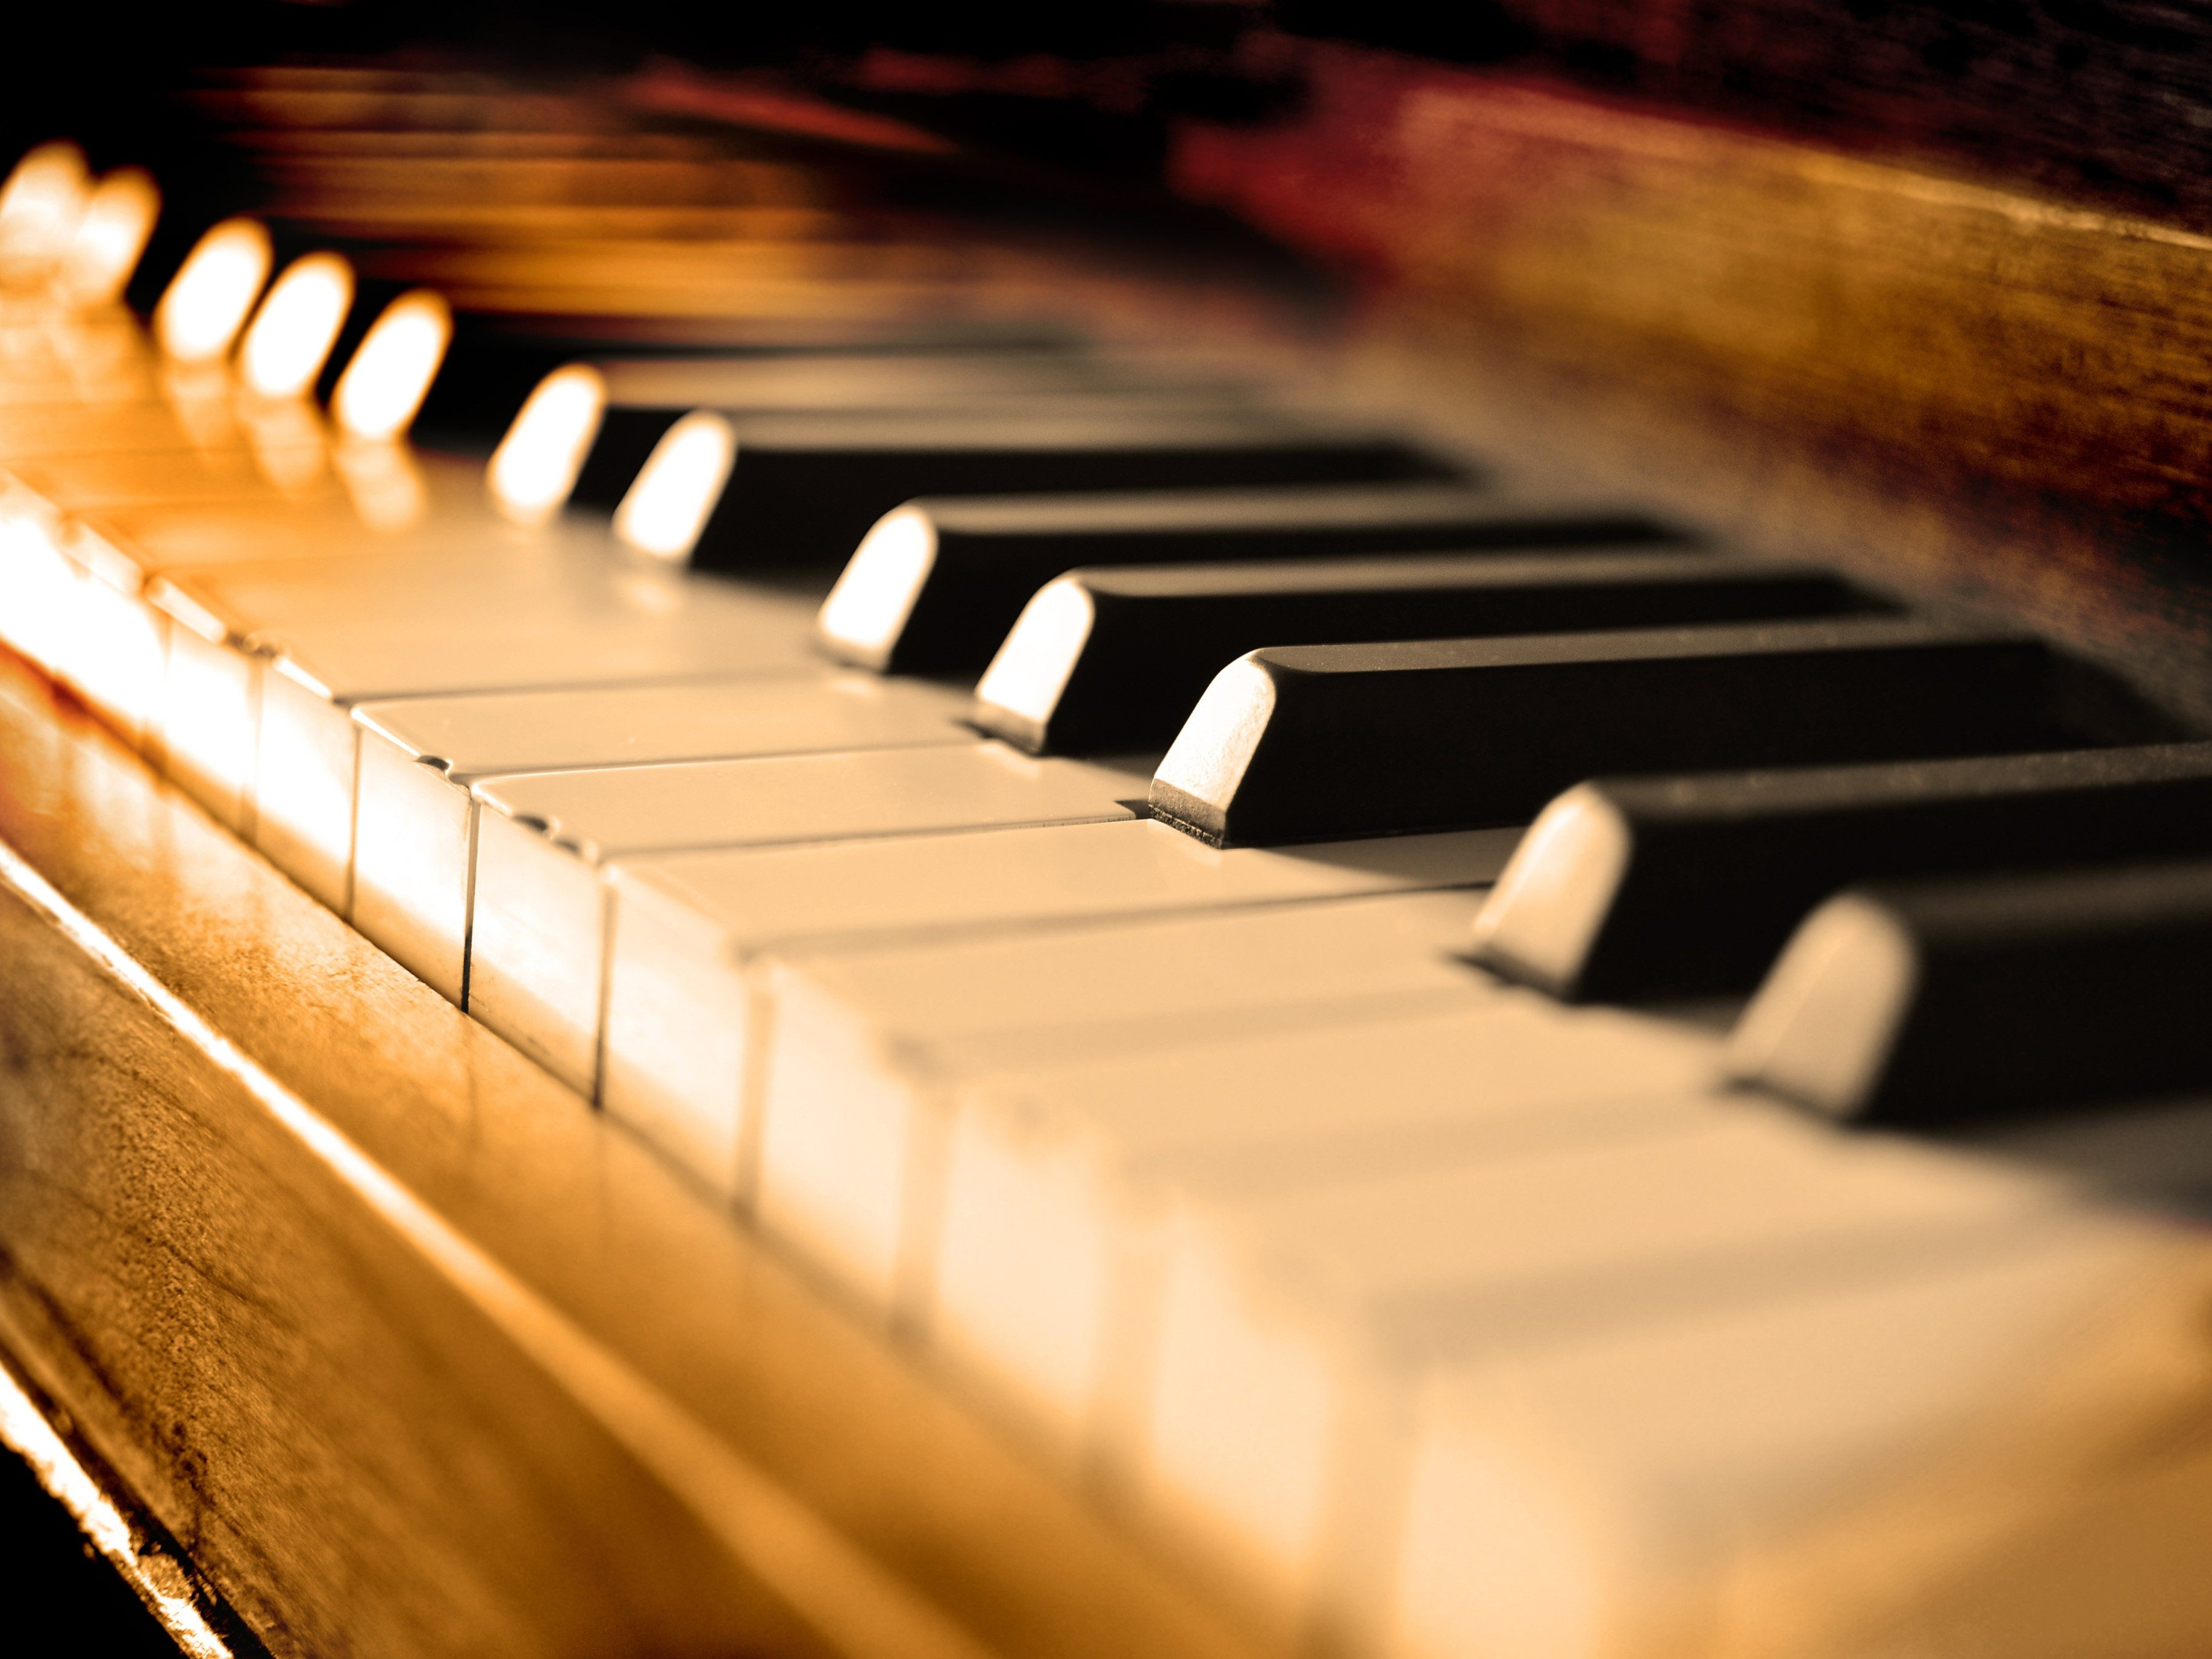 Use Toothpaste to Clean Piano Keys